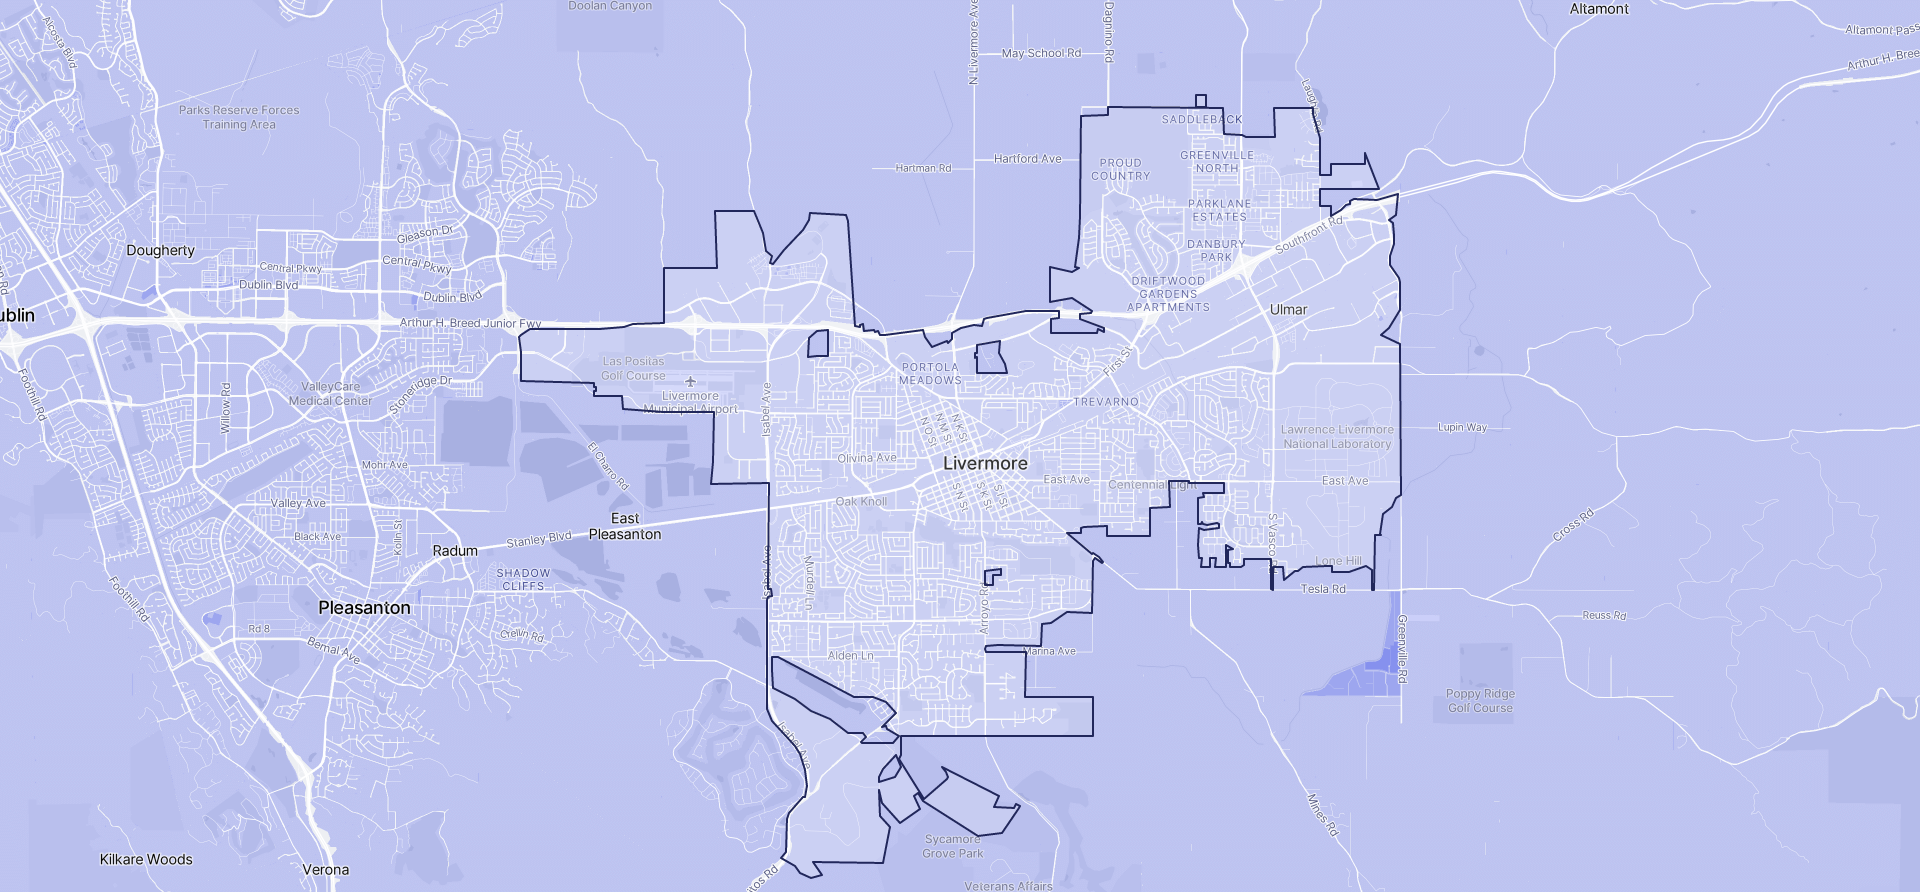 Image of Livermore boundaries on a map.